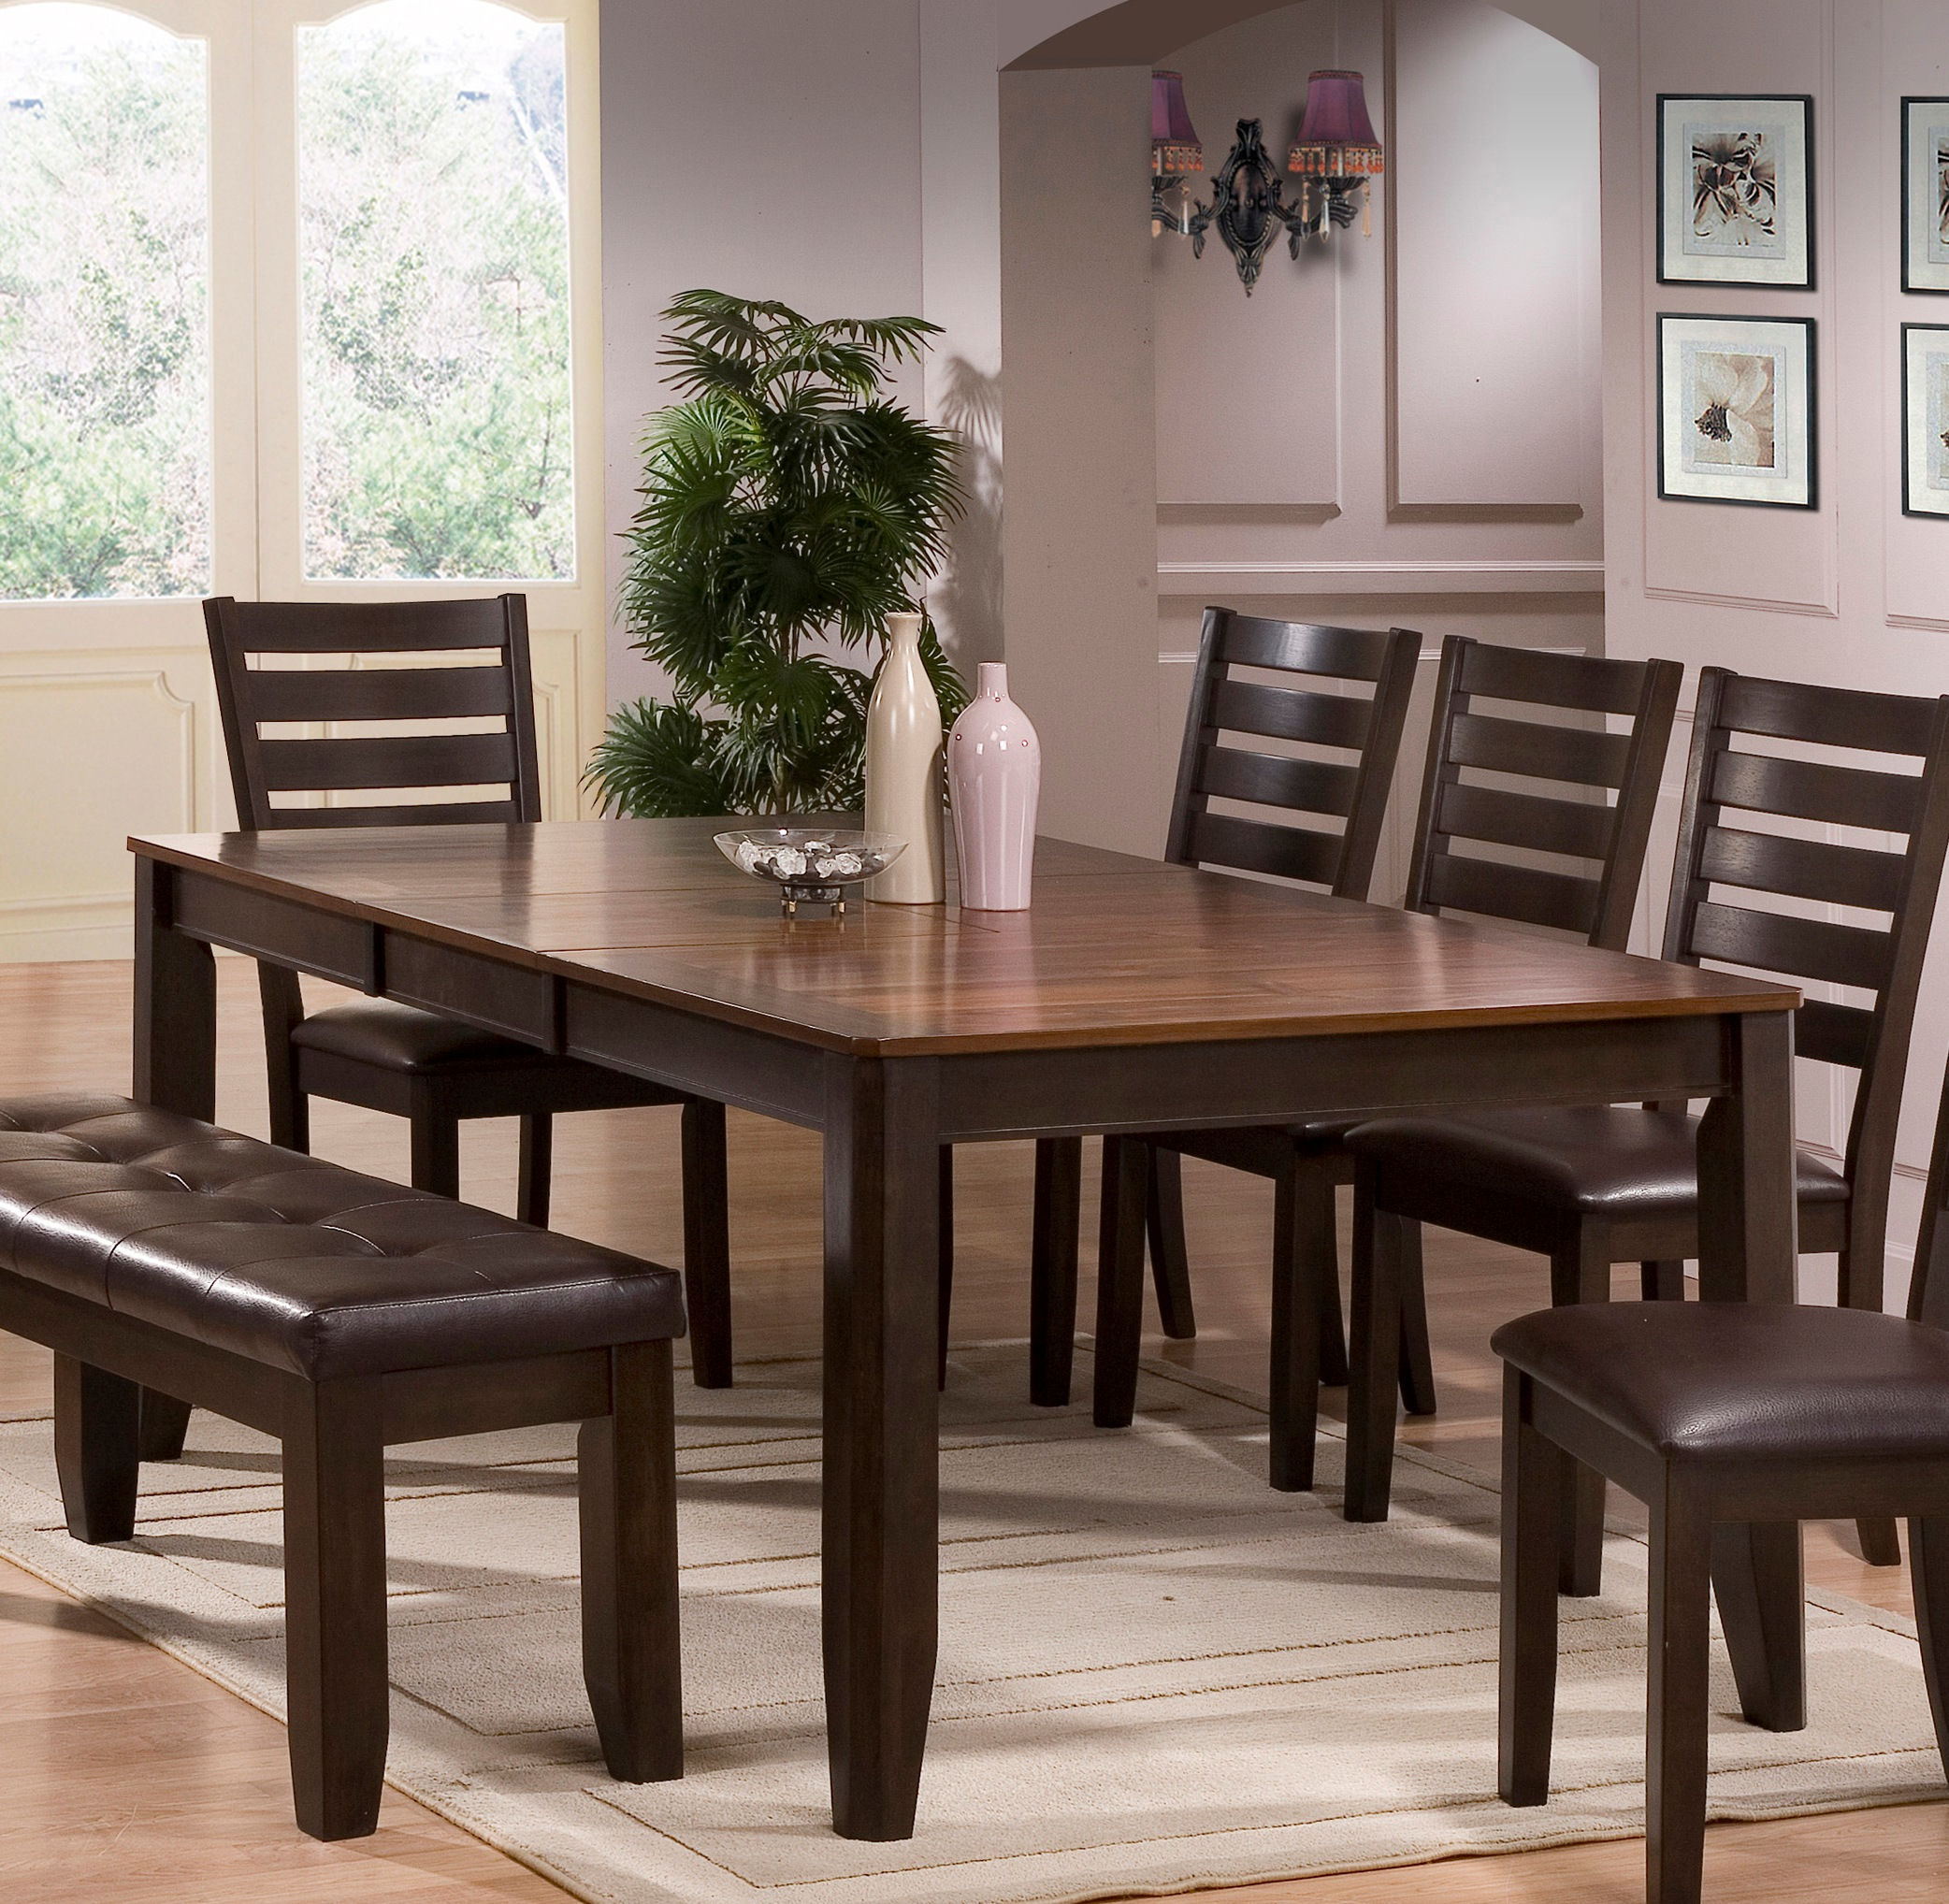 New hot deal deal of day daily deal discontinued crown mark elliot chocolate brown dining table